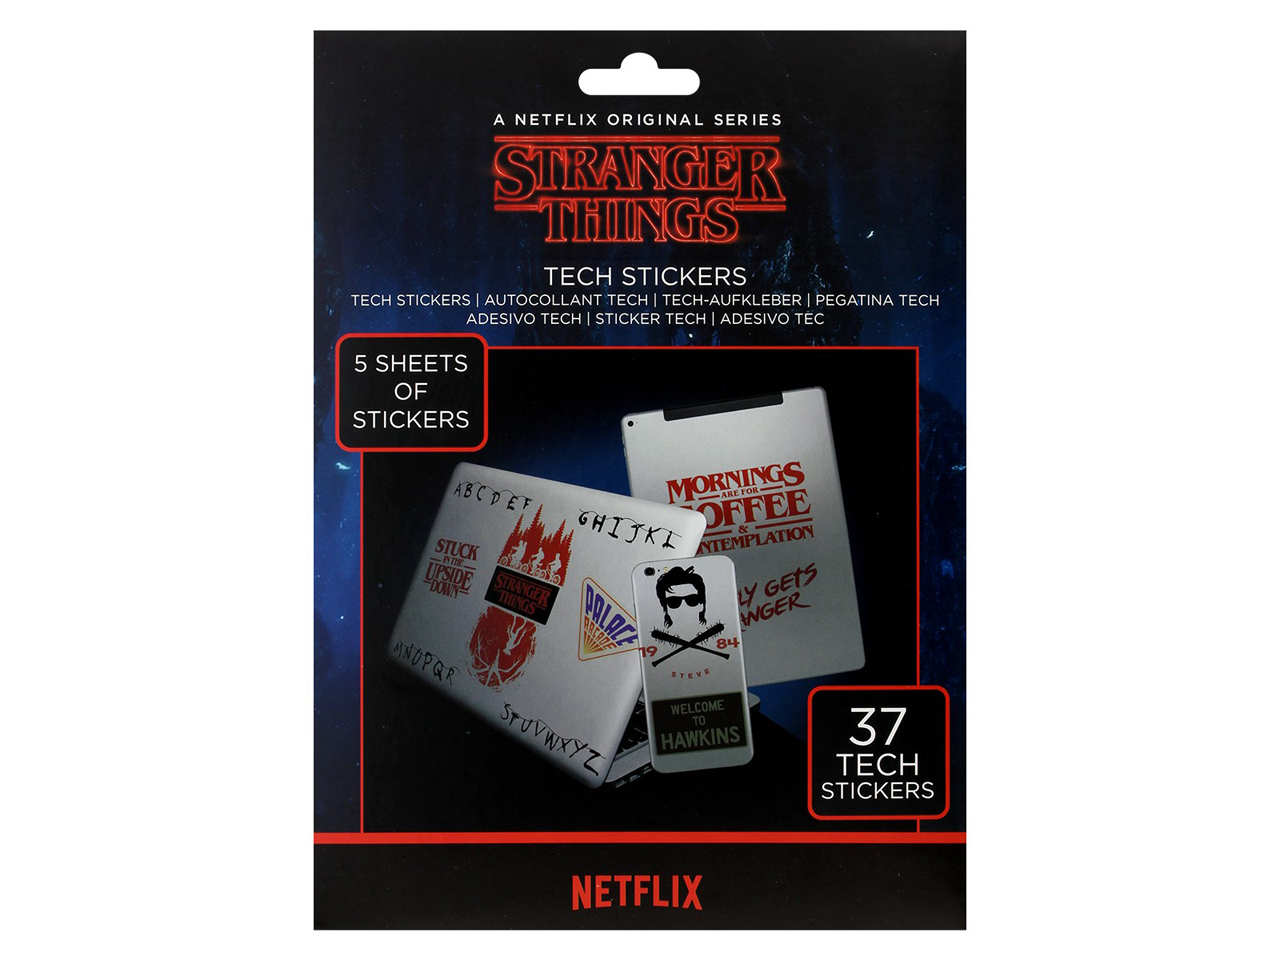 Official Stranger Things Tech Stickers Pack Phone Laptop Tablet Demogorgon Hawkins Mind Flayer Netflix Pyramid International Stationary Personalised Novelty Gift Home Decor